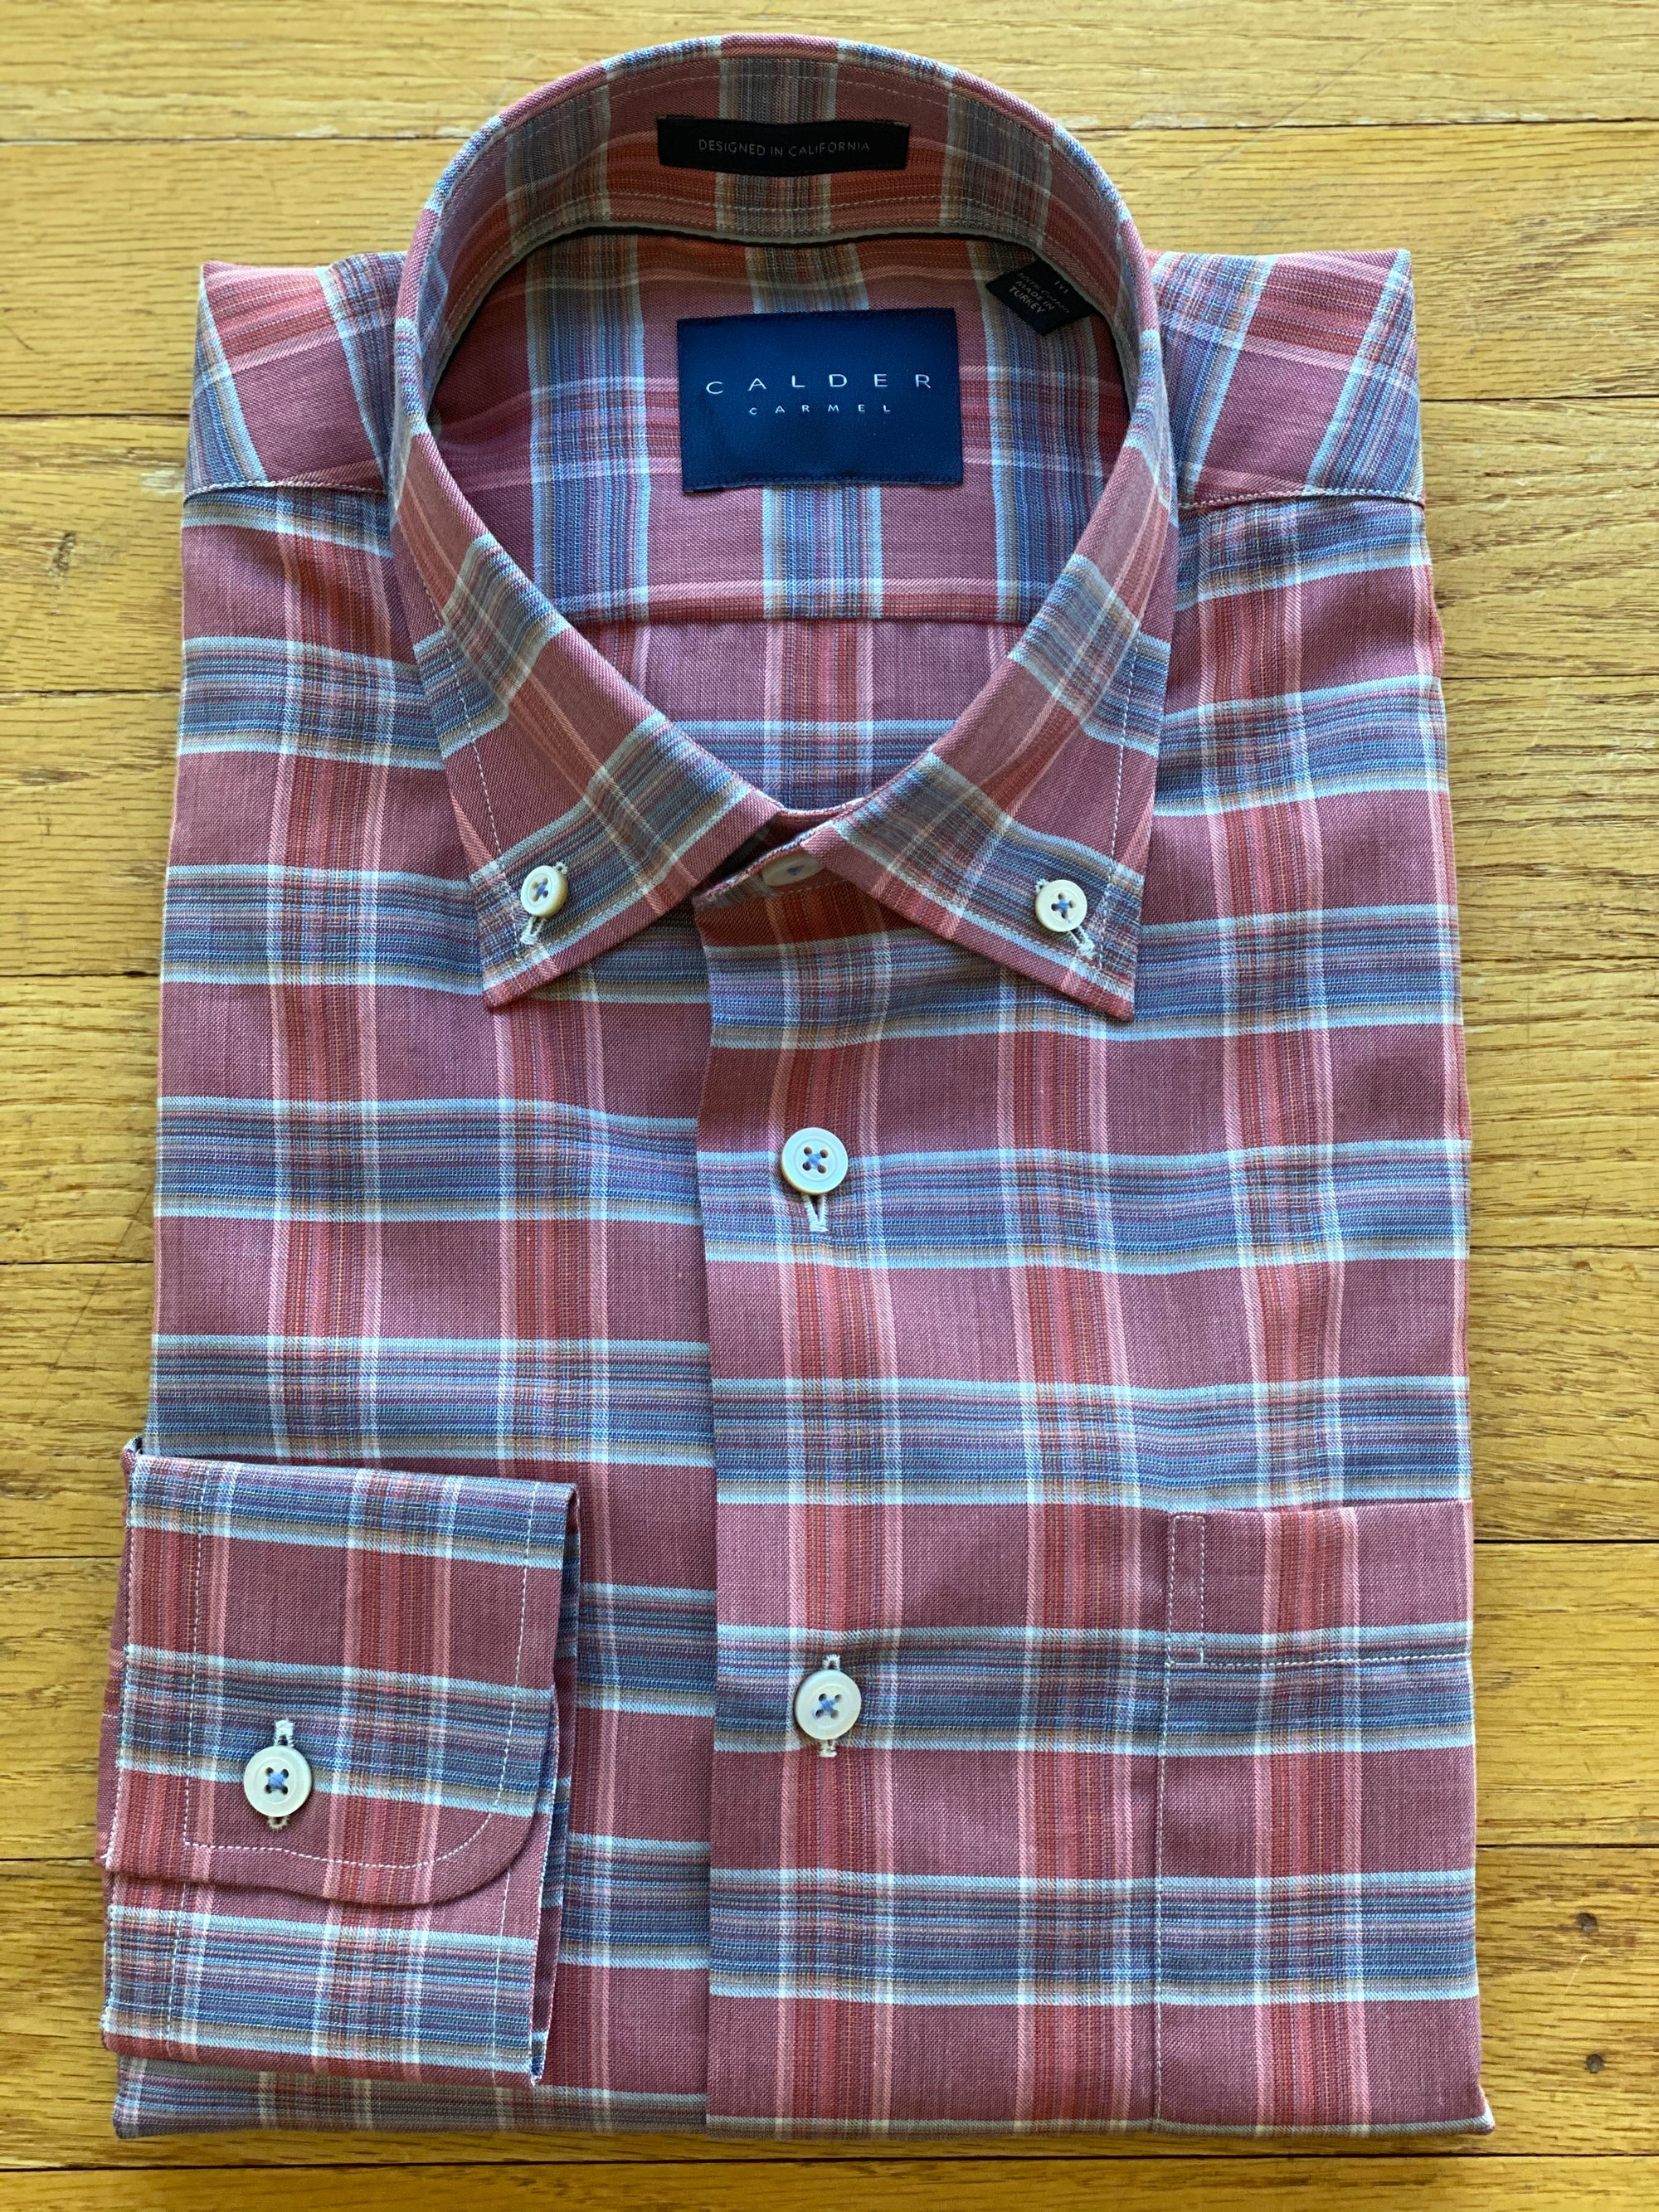 CALDER CARMEL TWILL RASPBERRY & LIGHT BLUE TIGHT PLAID MEN'S SPORT SHIRT